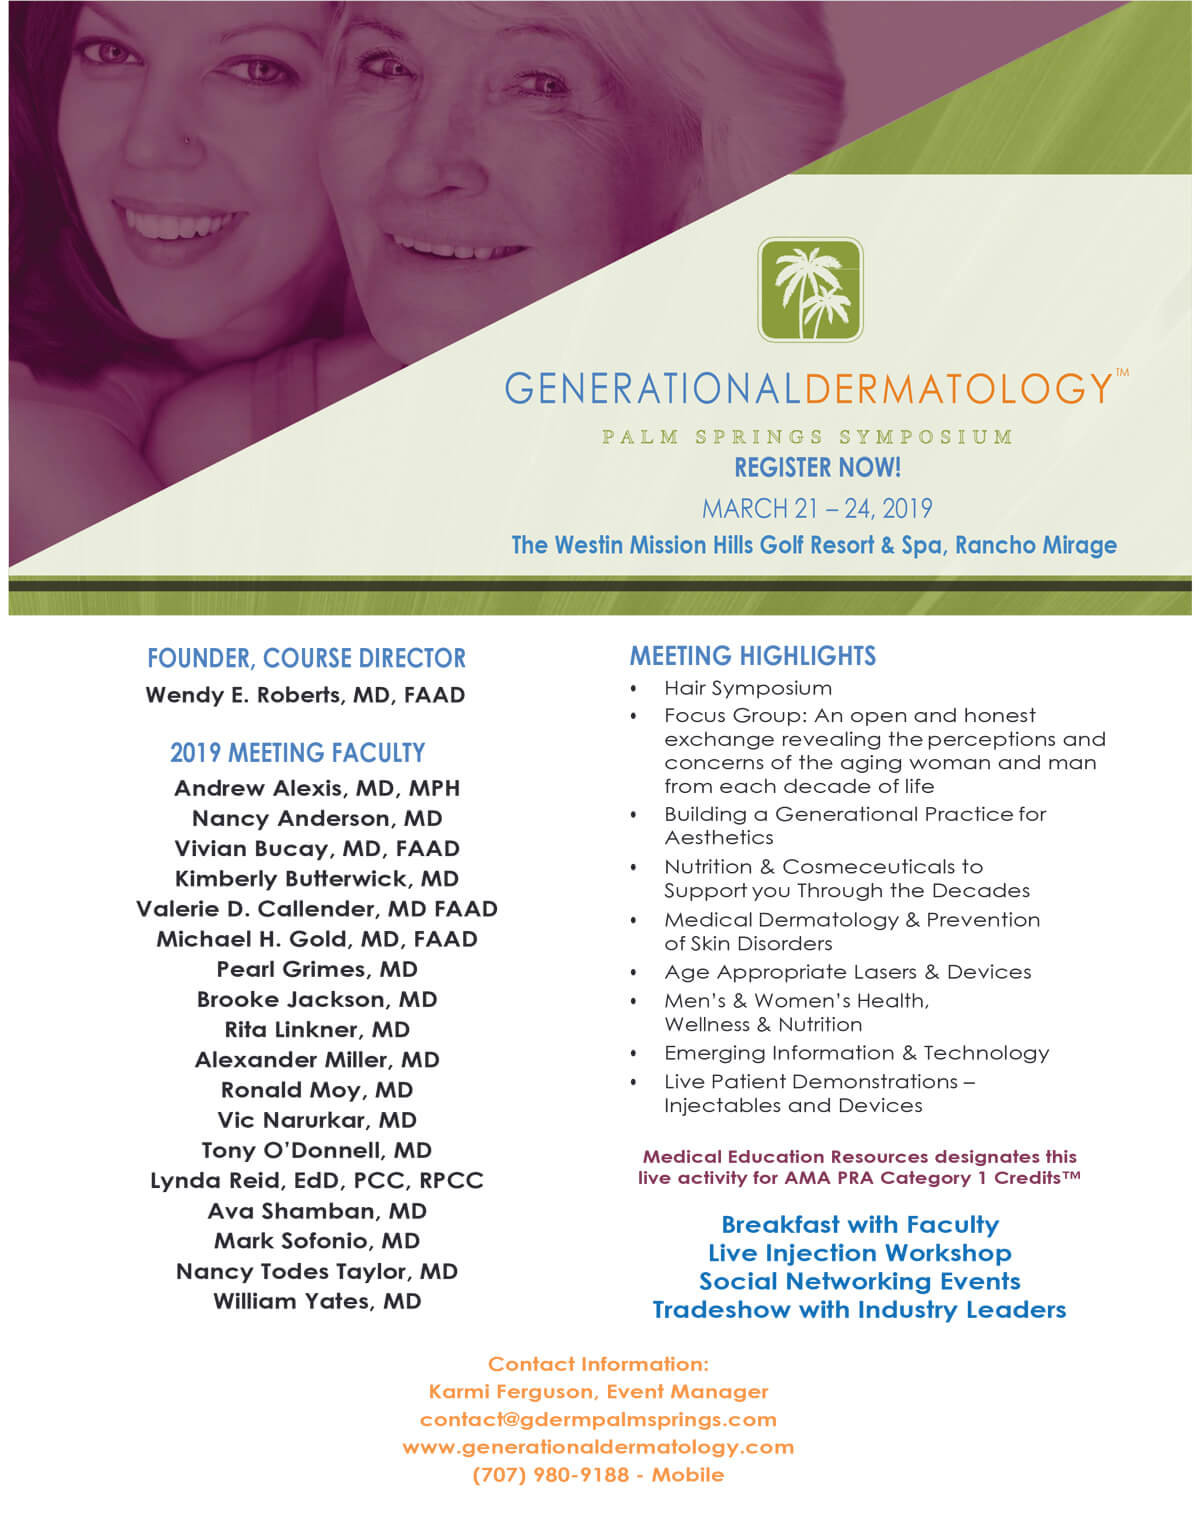 , National Meeting for Dermatologists and Skin Experts